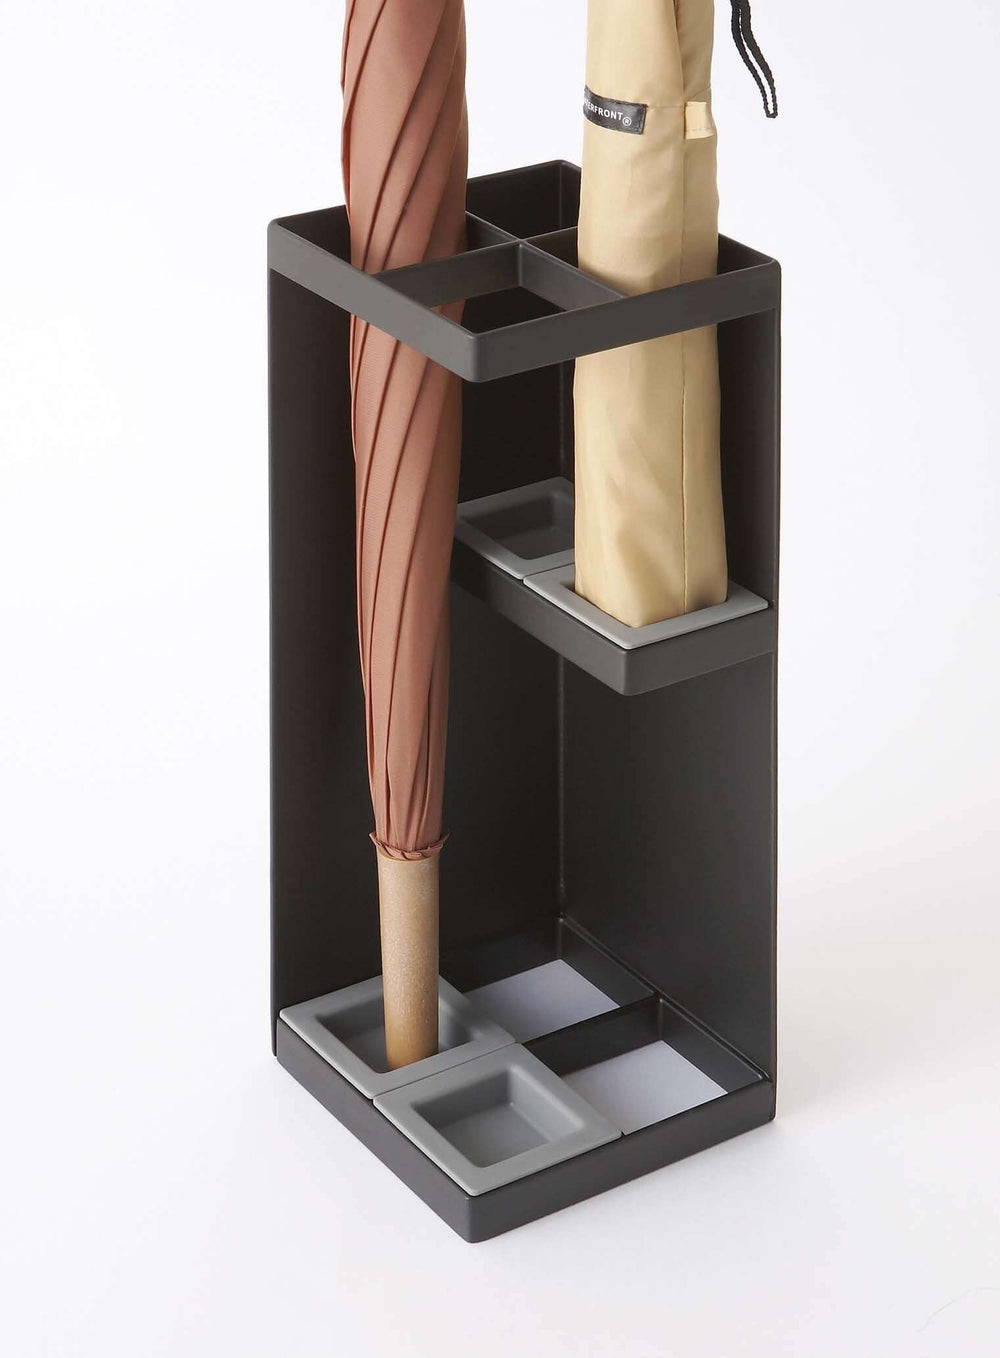 Yamazaki's umbrella stand with adjustable height interior shelves holding two umbrellas